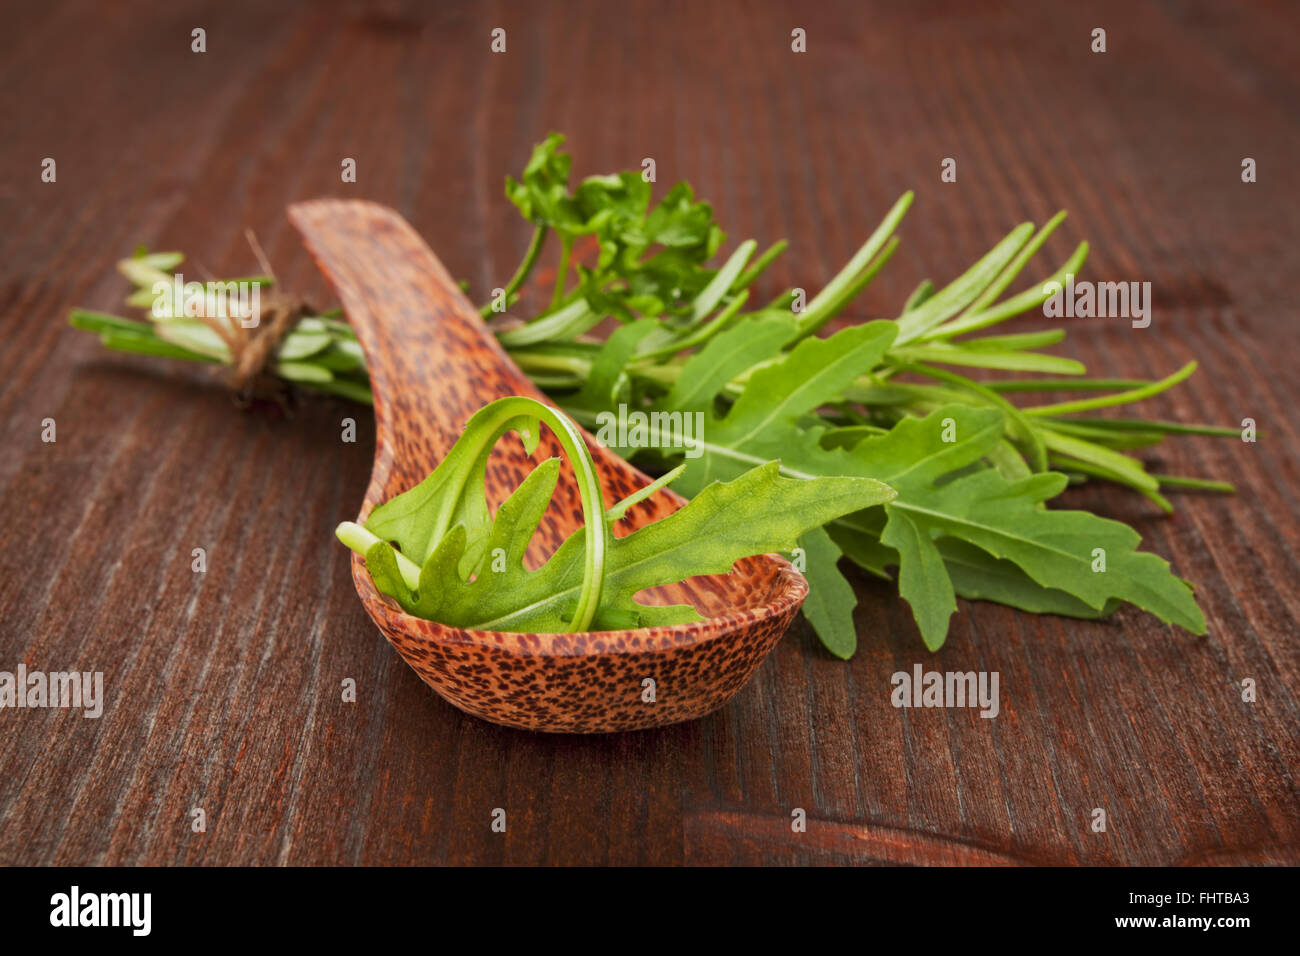 Variation des herbes culinaires. Photo Stock